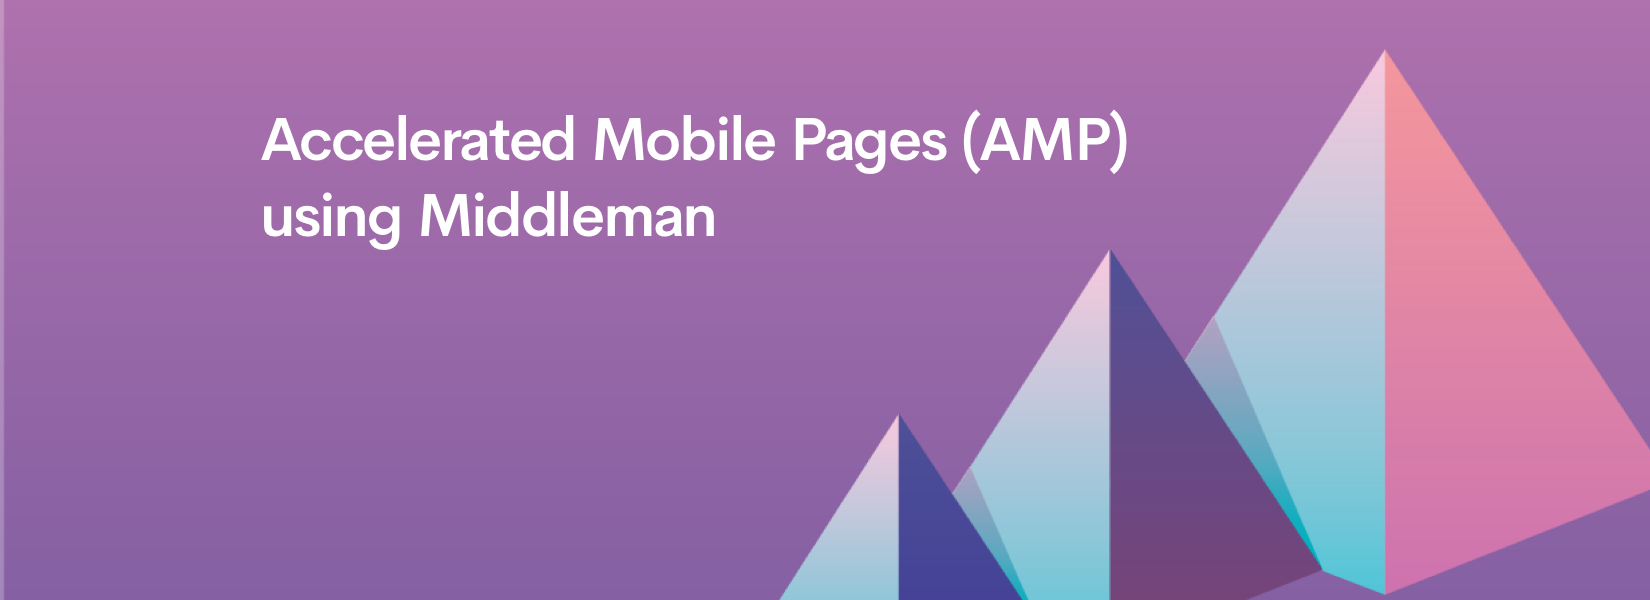 Accelerated Mobile Pages (AMP) using Middleman